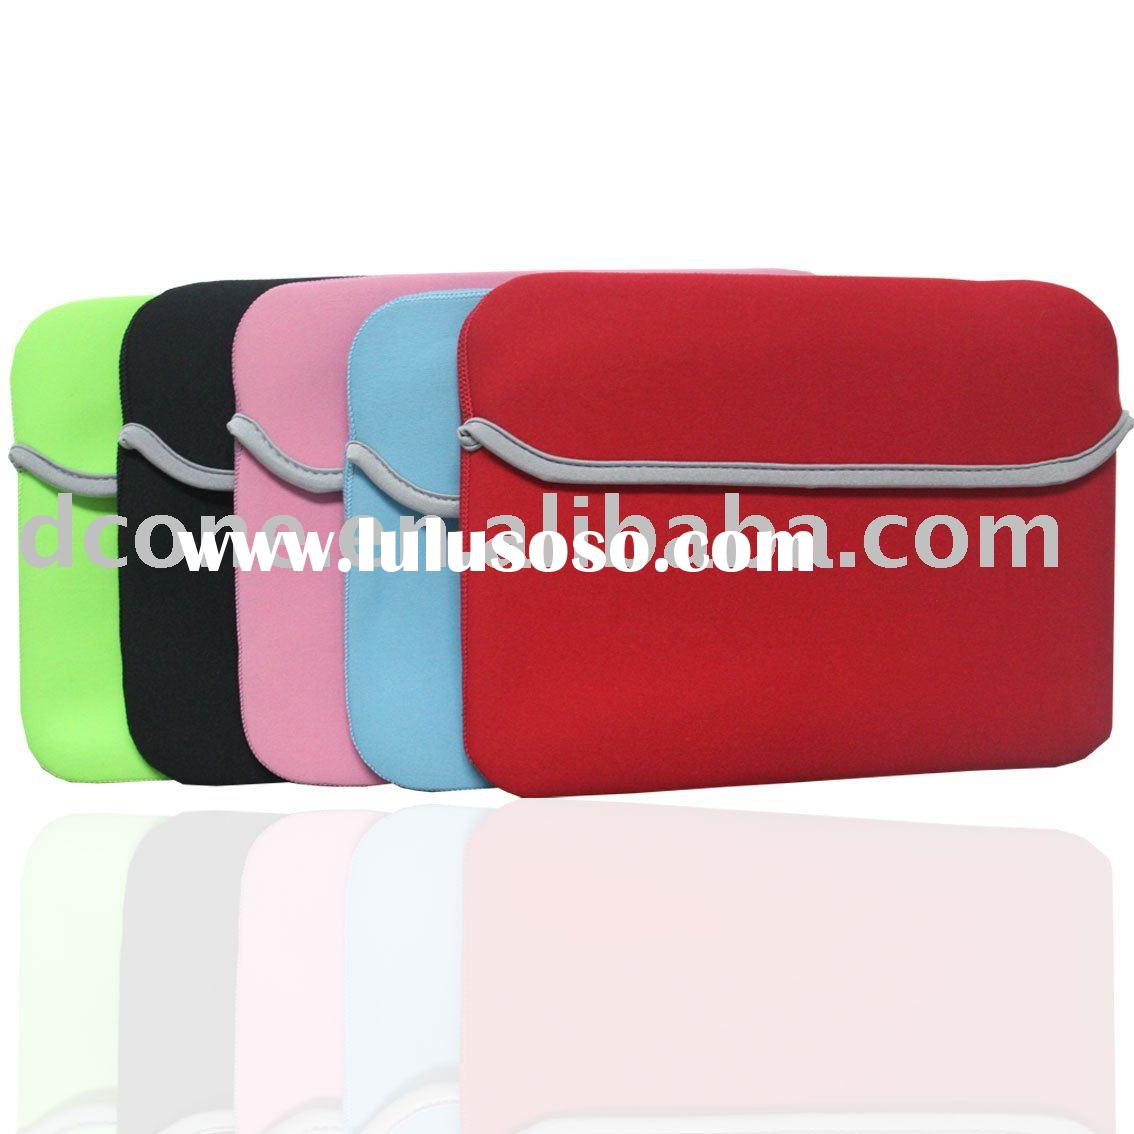 Reversible neoprene sleeve notebook bag neoprene laptop sleeve for Lenovo Thinkpad X200 IBM )